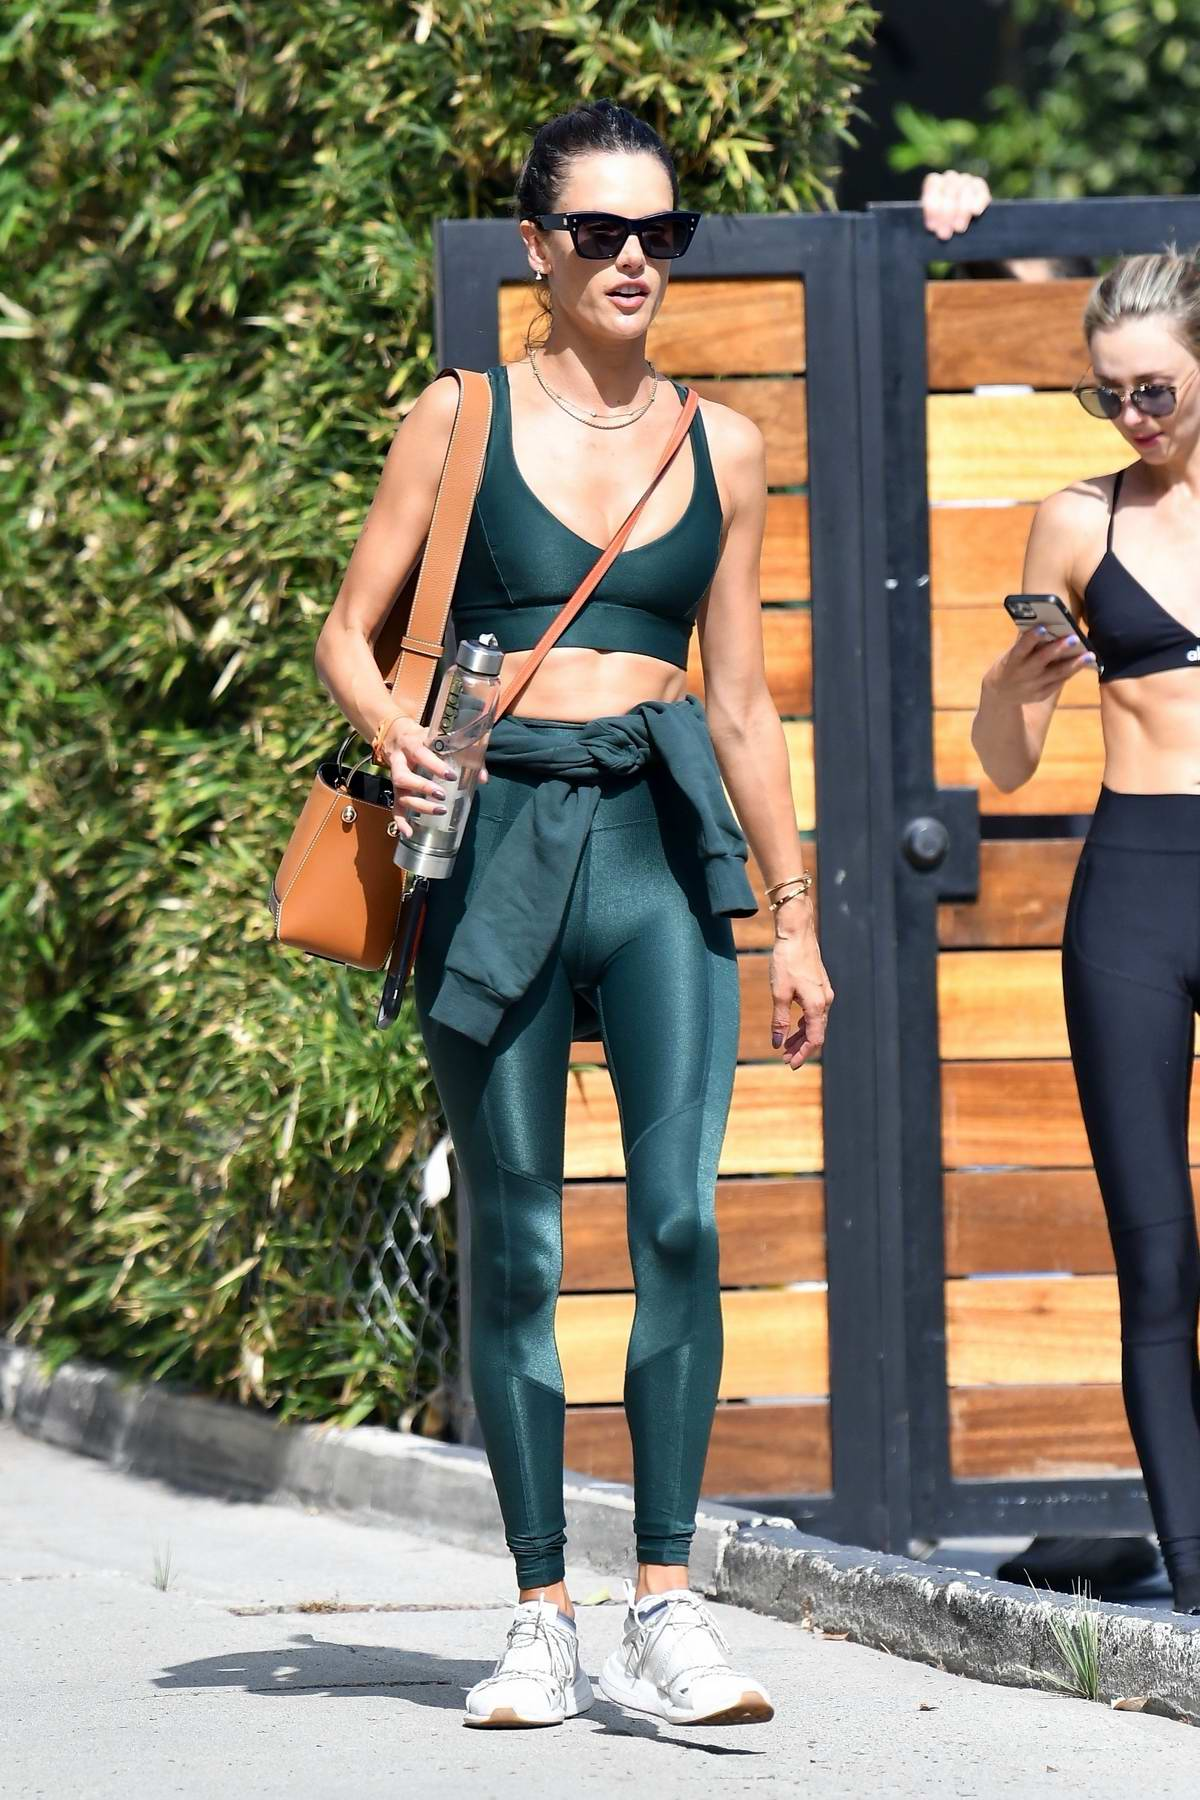 Alessandra Ambrosio rocks green sports bra and leggings for a workout session in Brentwood, California